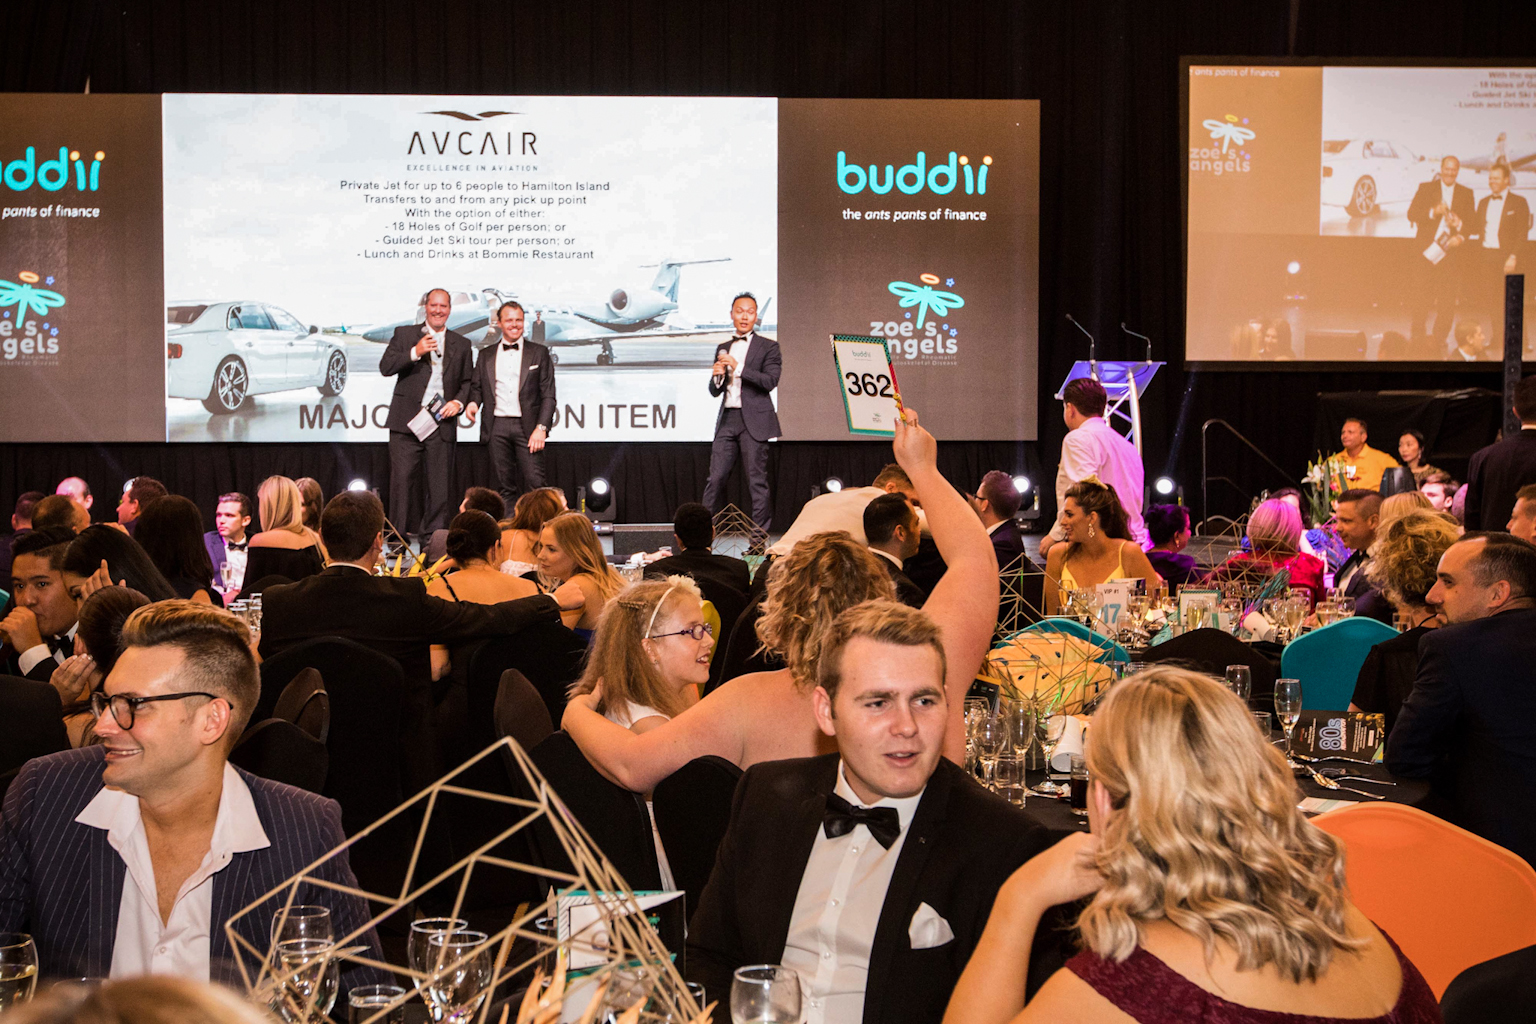 Zoe's Angels Charity Event with the Auction being held at the Sofitel Hotel in Brisbane